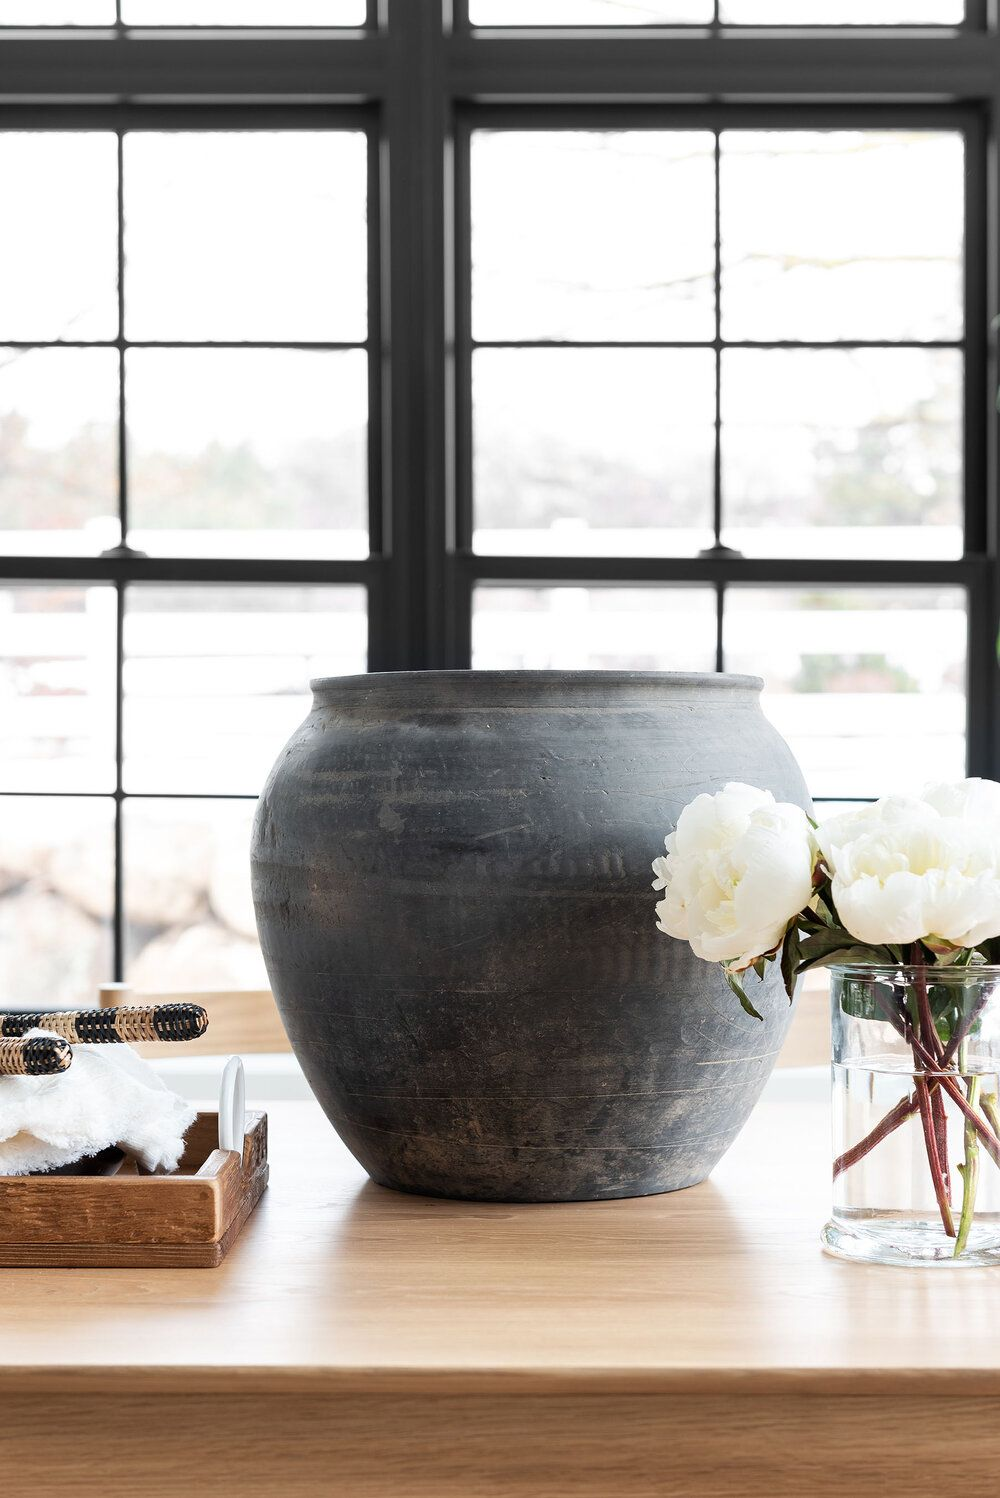 Styling Dining Spaces For The Everyday Studio Mcgee Studio Mcgee Vase Vases Decor